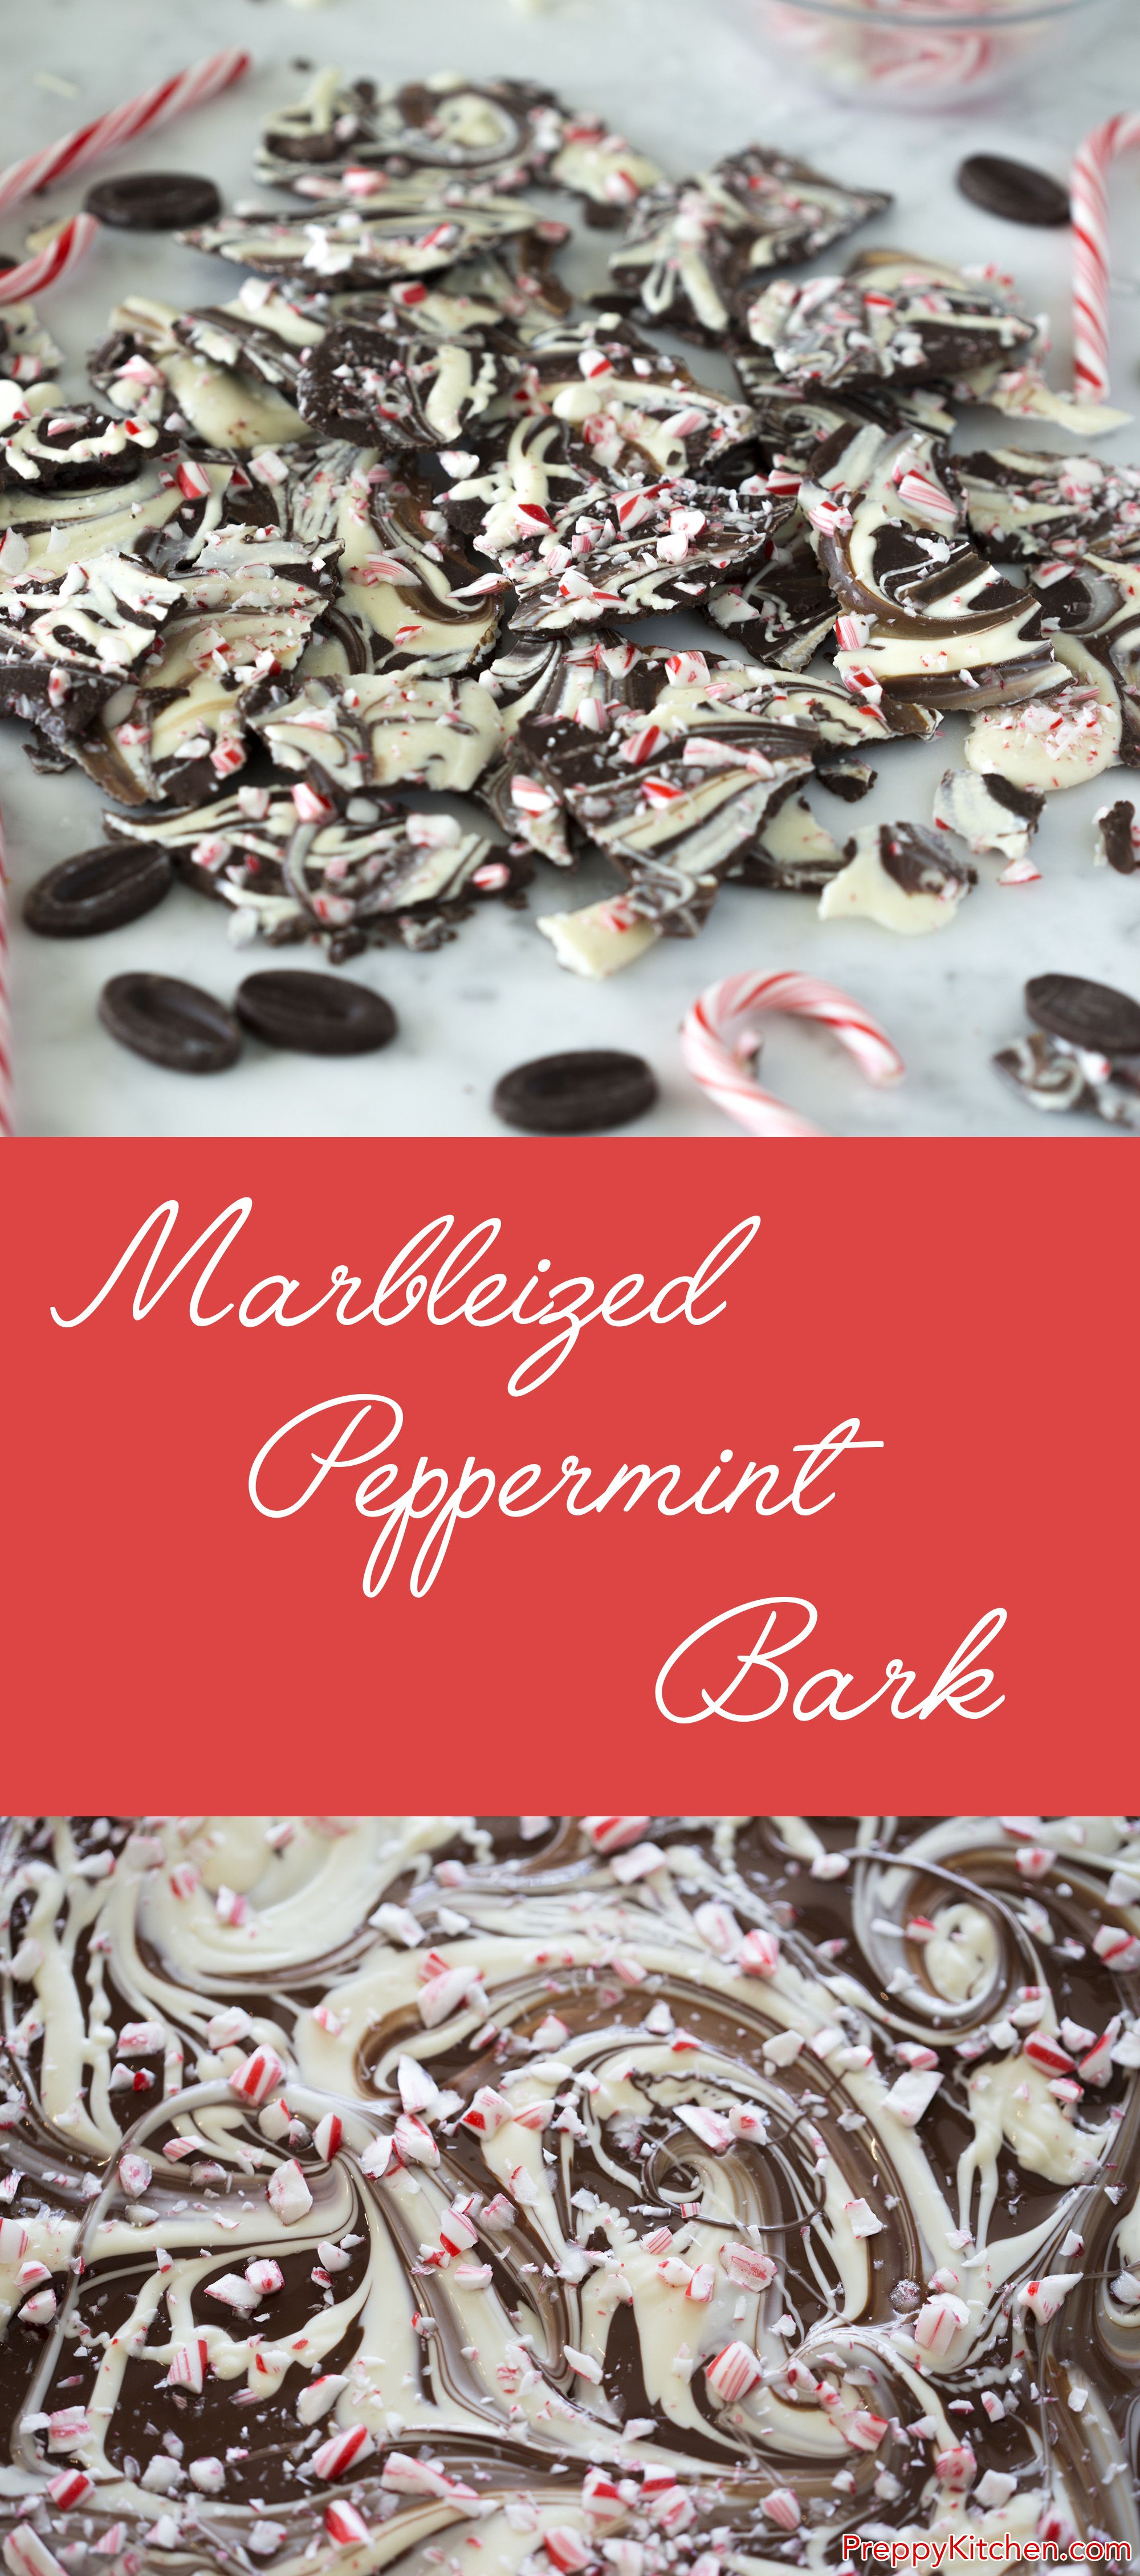 Dark Chocolate, White Chocolate, Peppermint And Crushed Candy Canes A